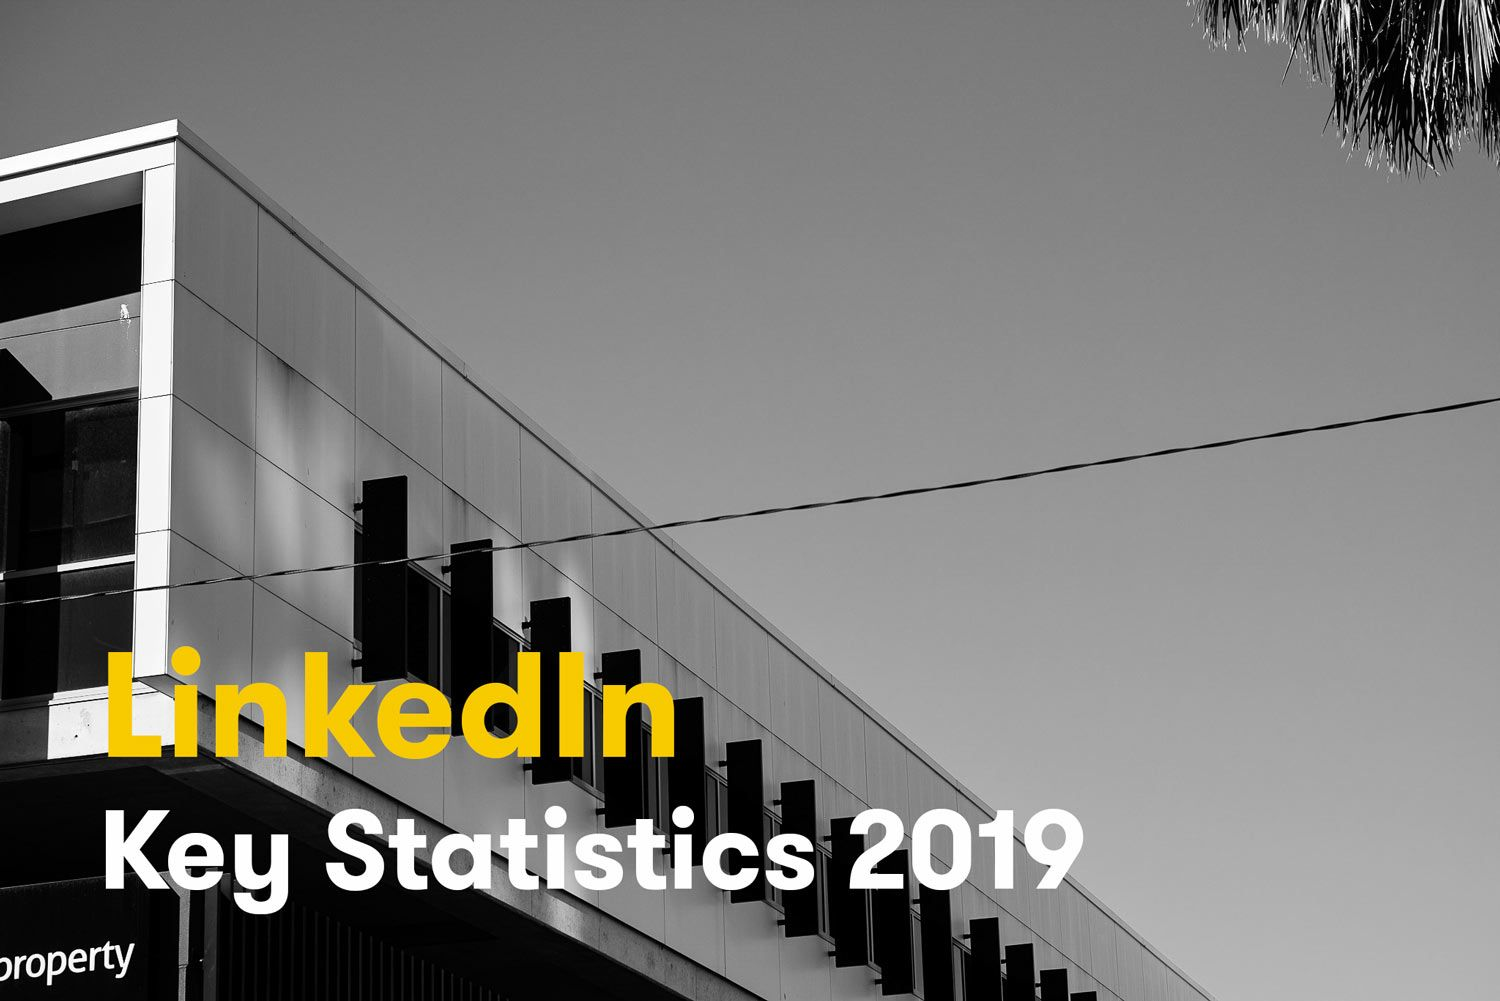 LinkedIn Key Statistics for 2020 [Infographic]